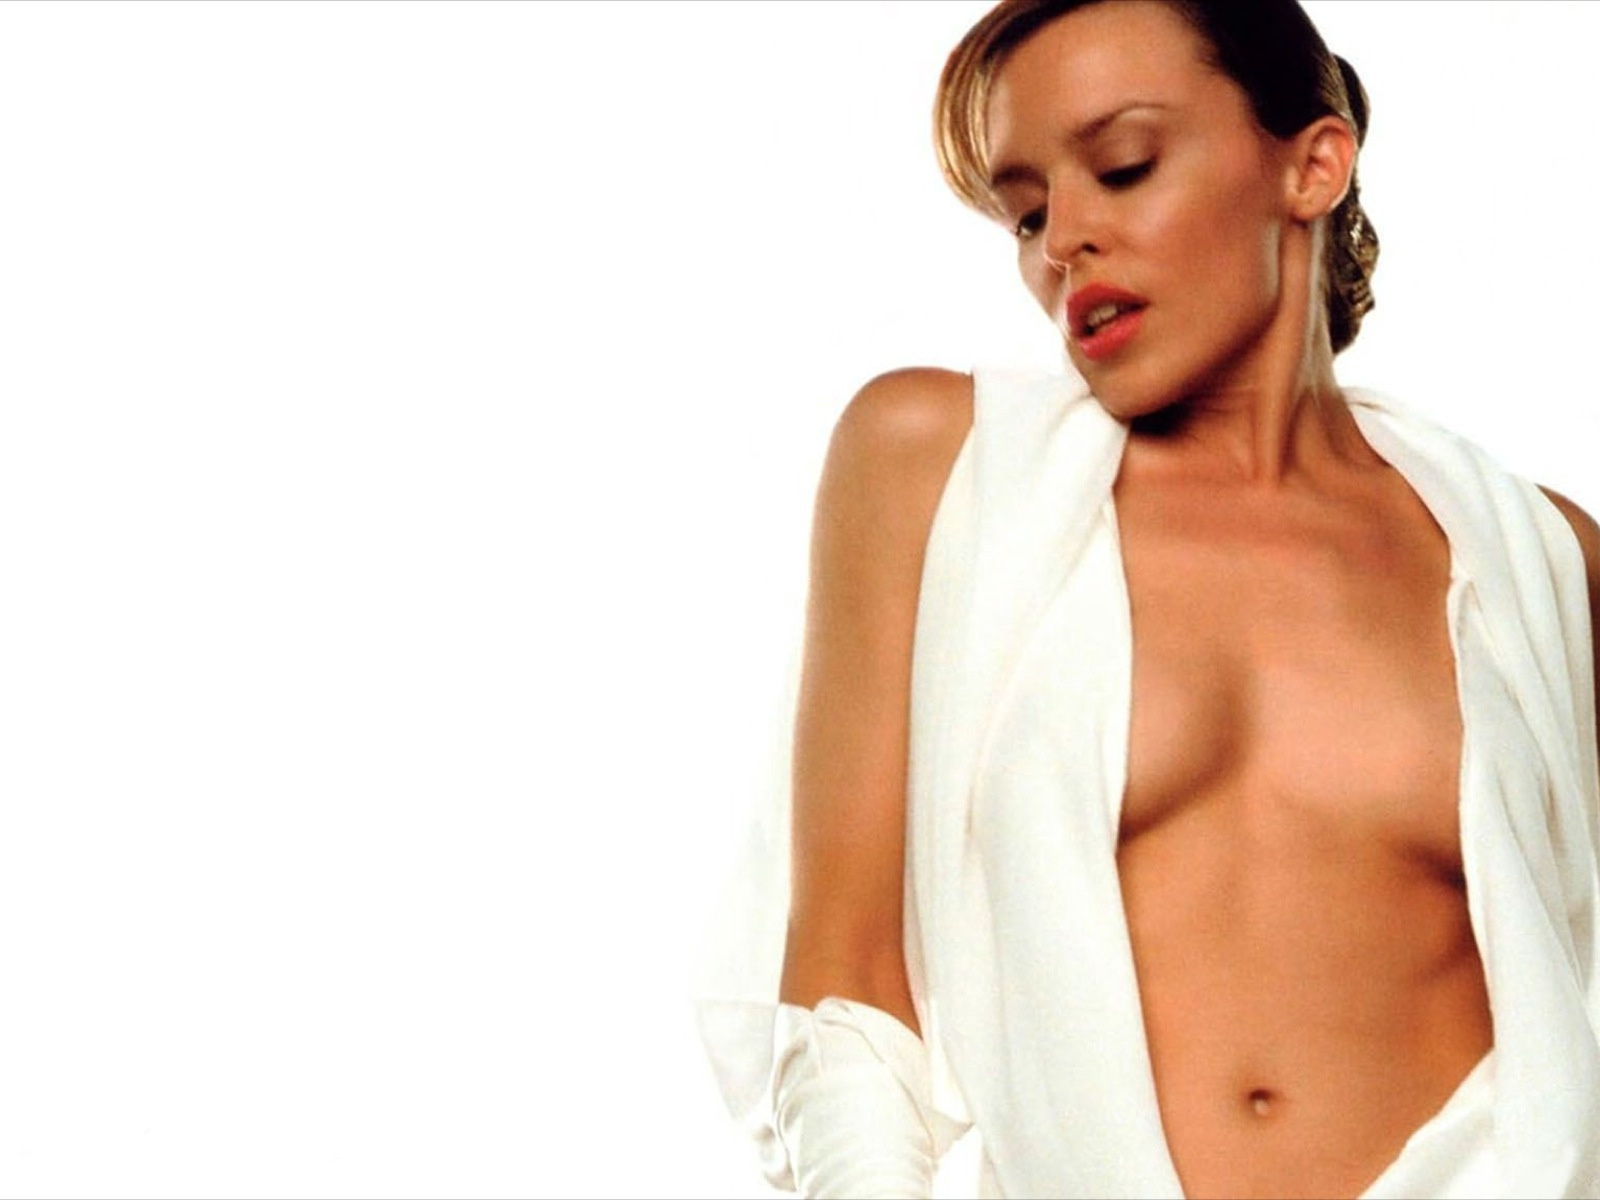 http://1.bp.blogspot.com/-ML-C_V9Nc20/Tv71j6ExHdI/AAAAAAAABNU/oWr19fyj_HQ/s1600/Kylie_Minogue_0121_1600x1200_Wallpaper.jpg